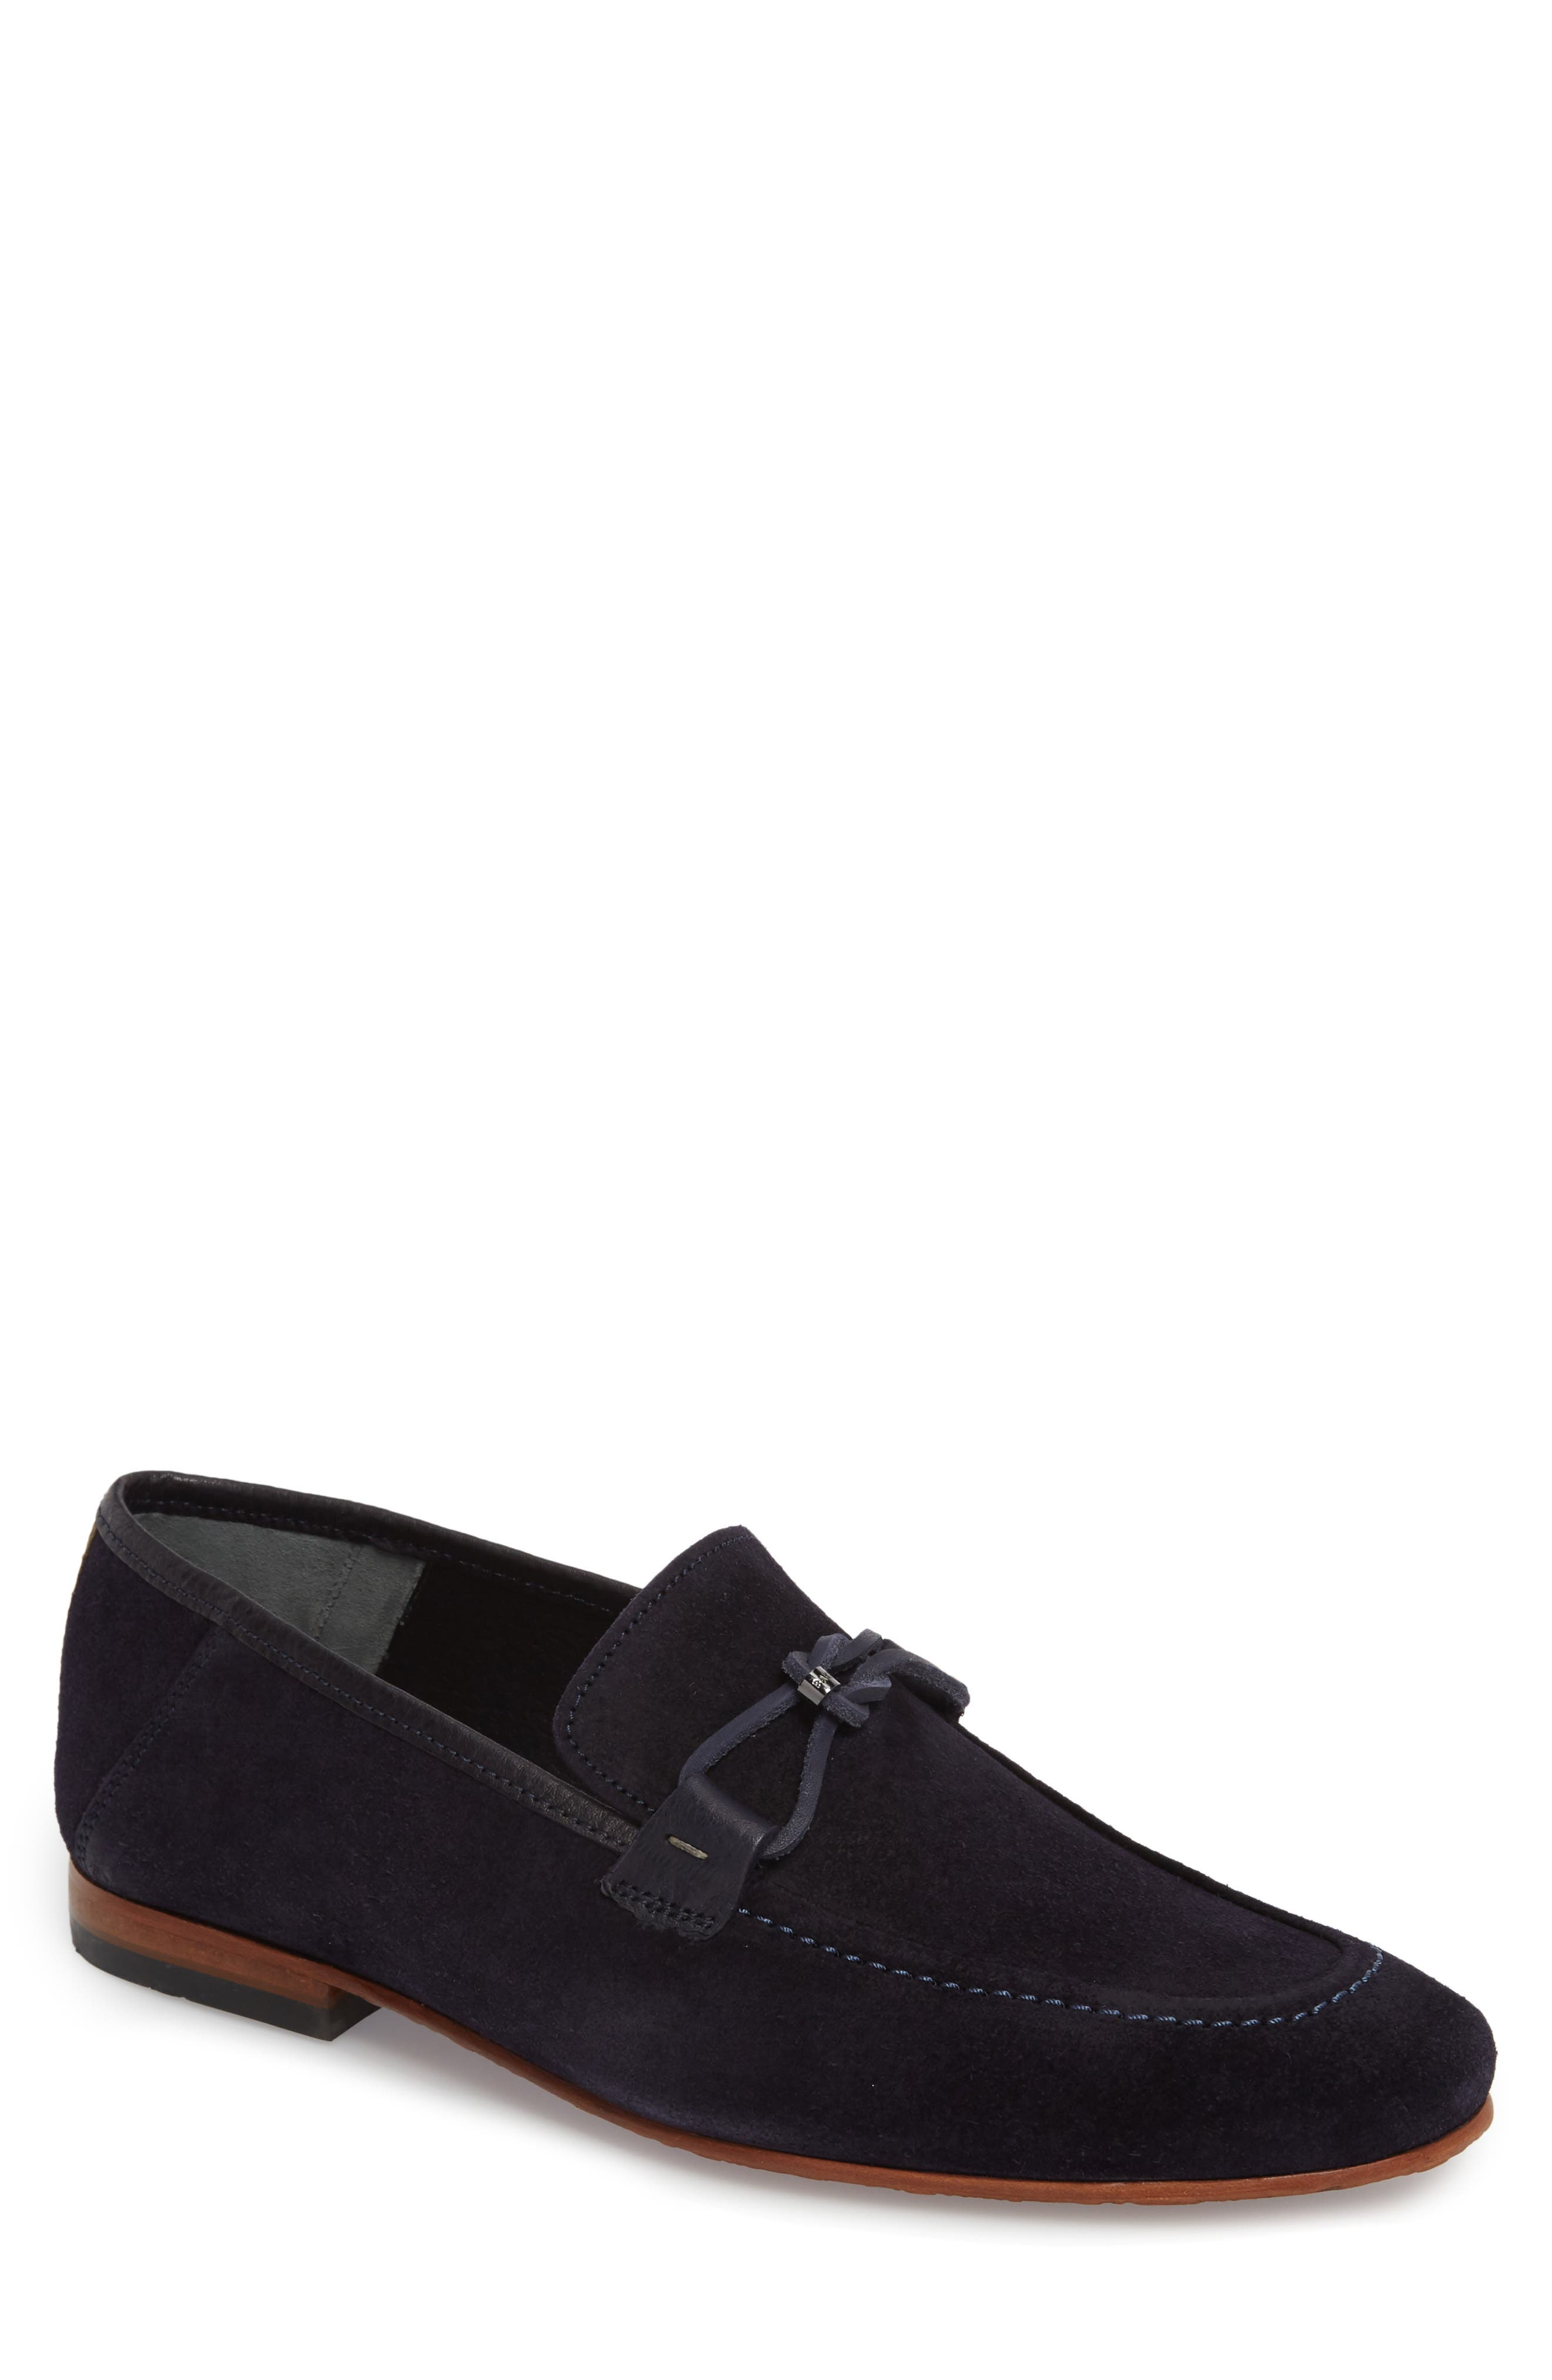 Hoppken Convertible Knotted Loafer,                             Main thumbnail 1, color,                             Dark Blue Suede